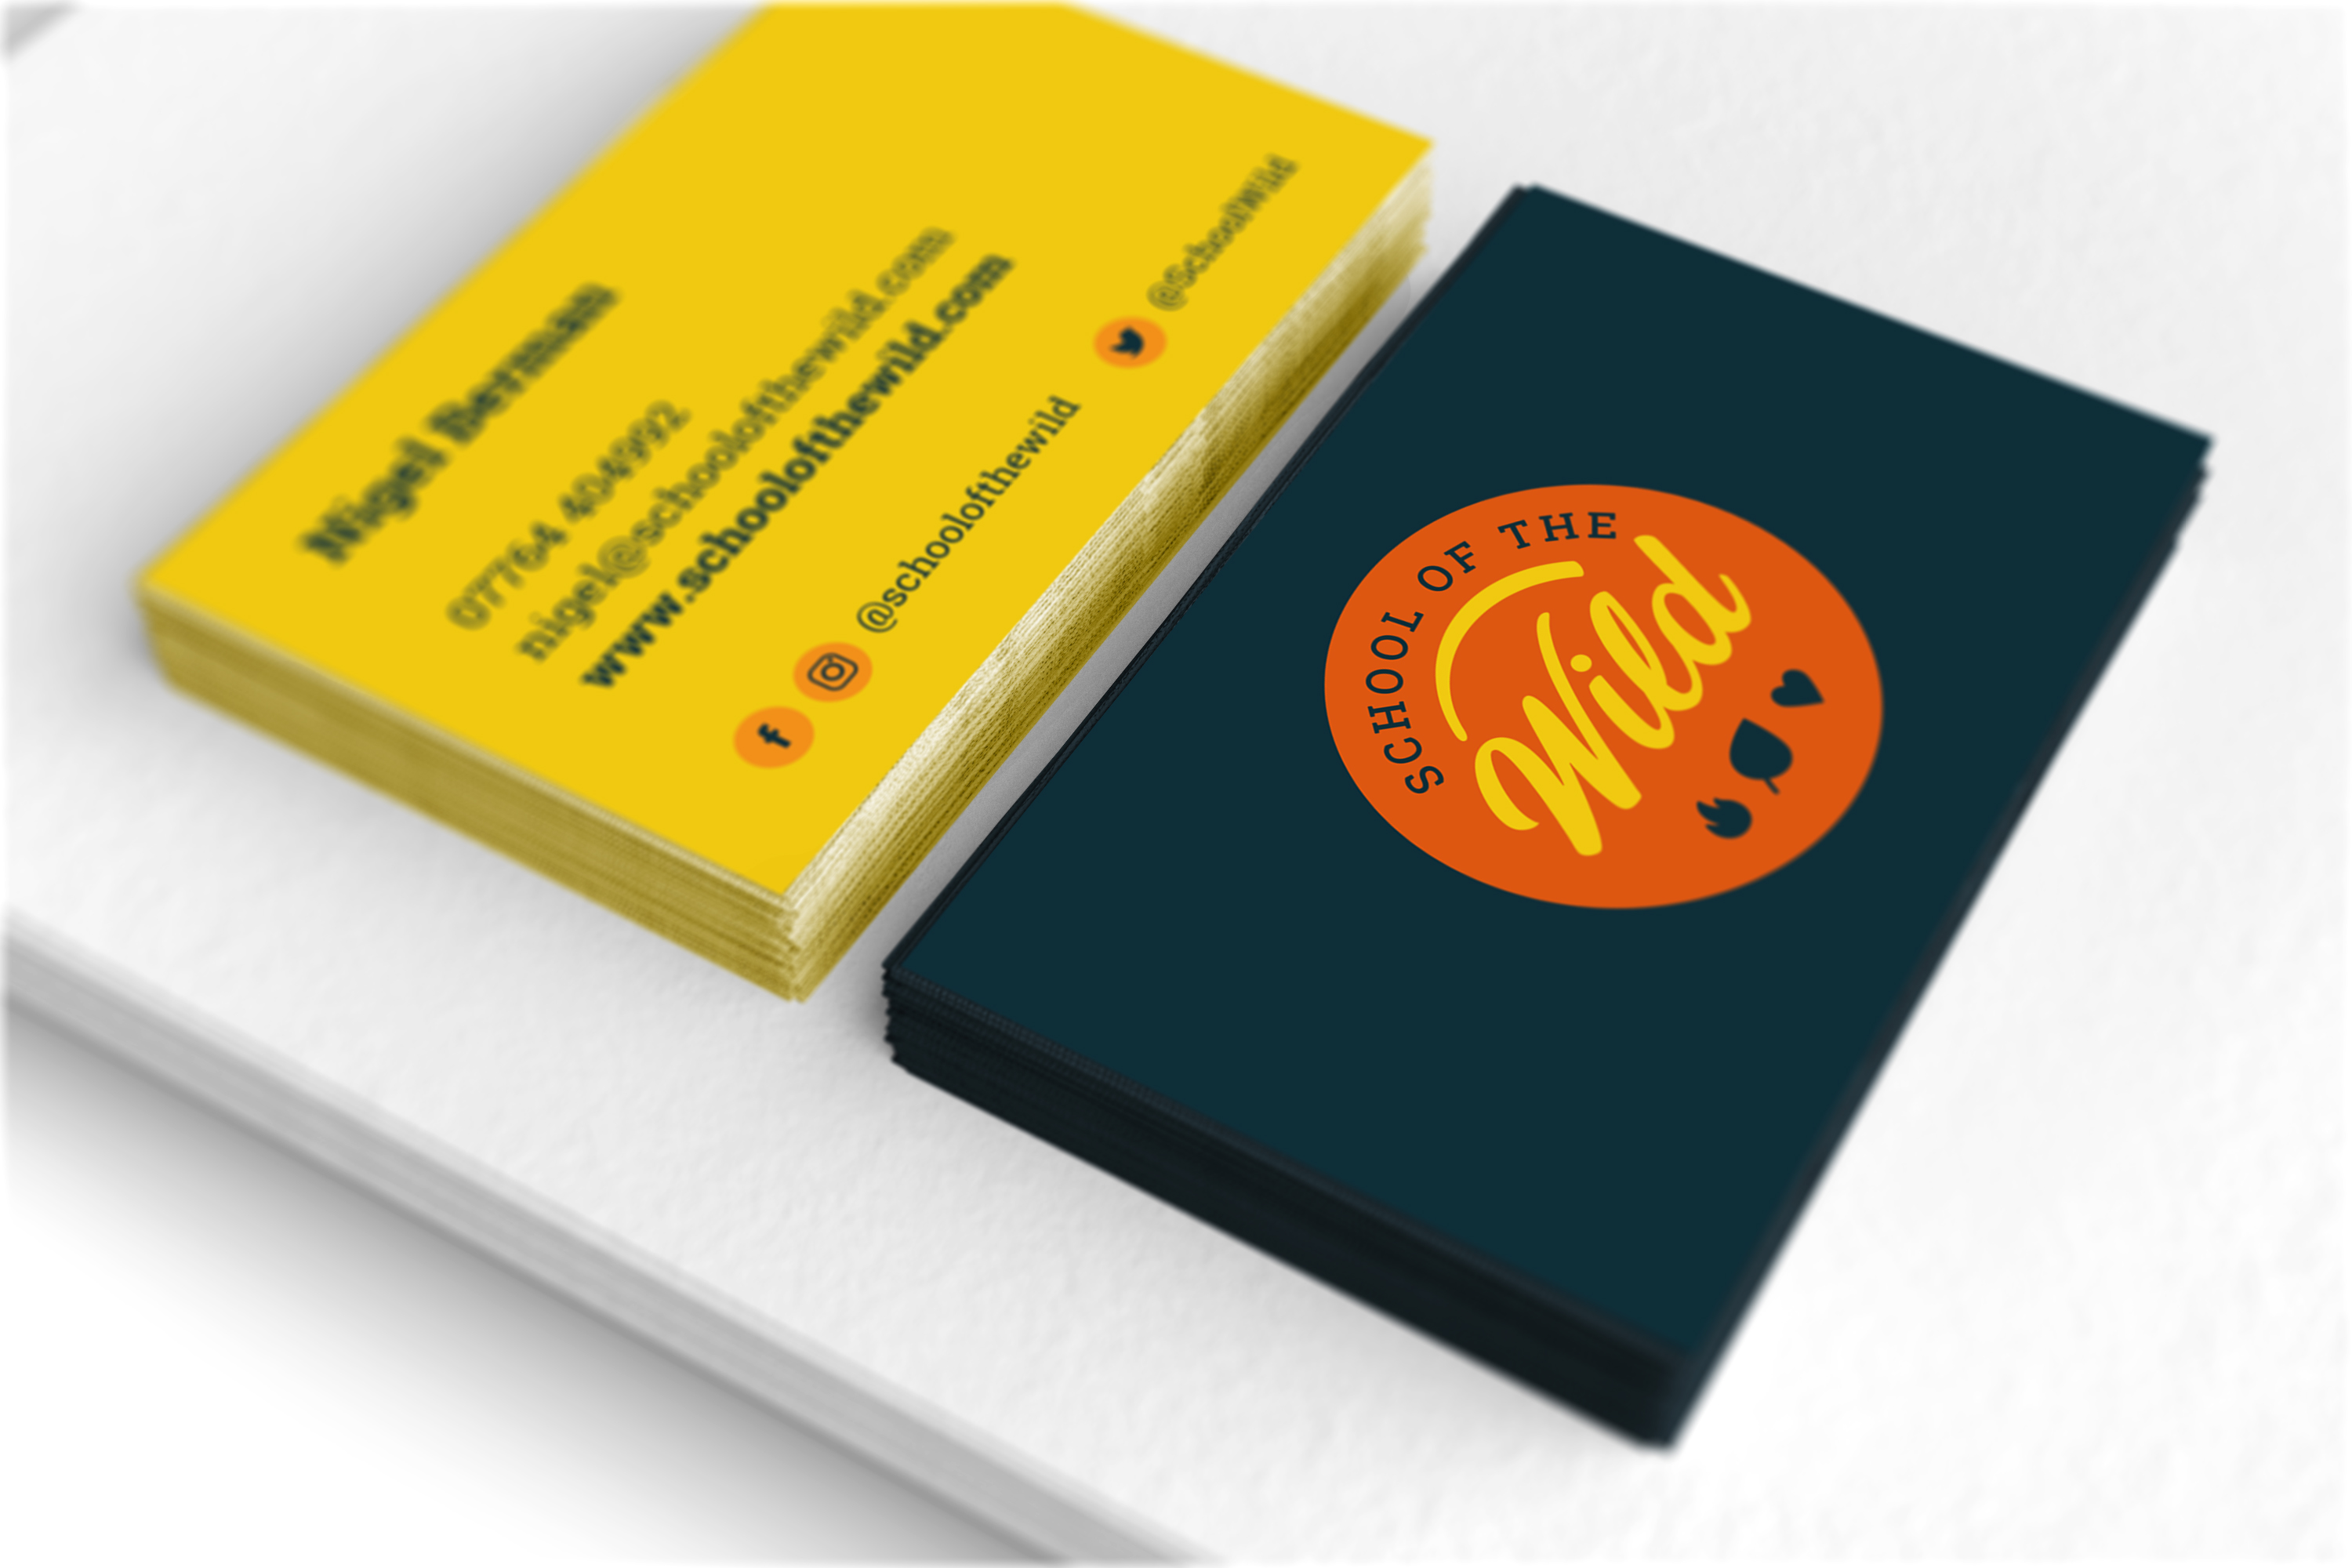 School of the Wild logo and business card design